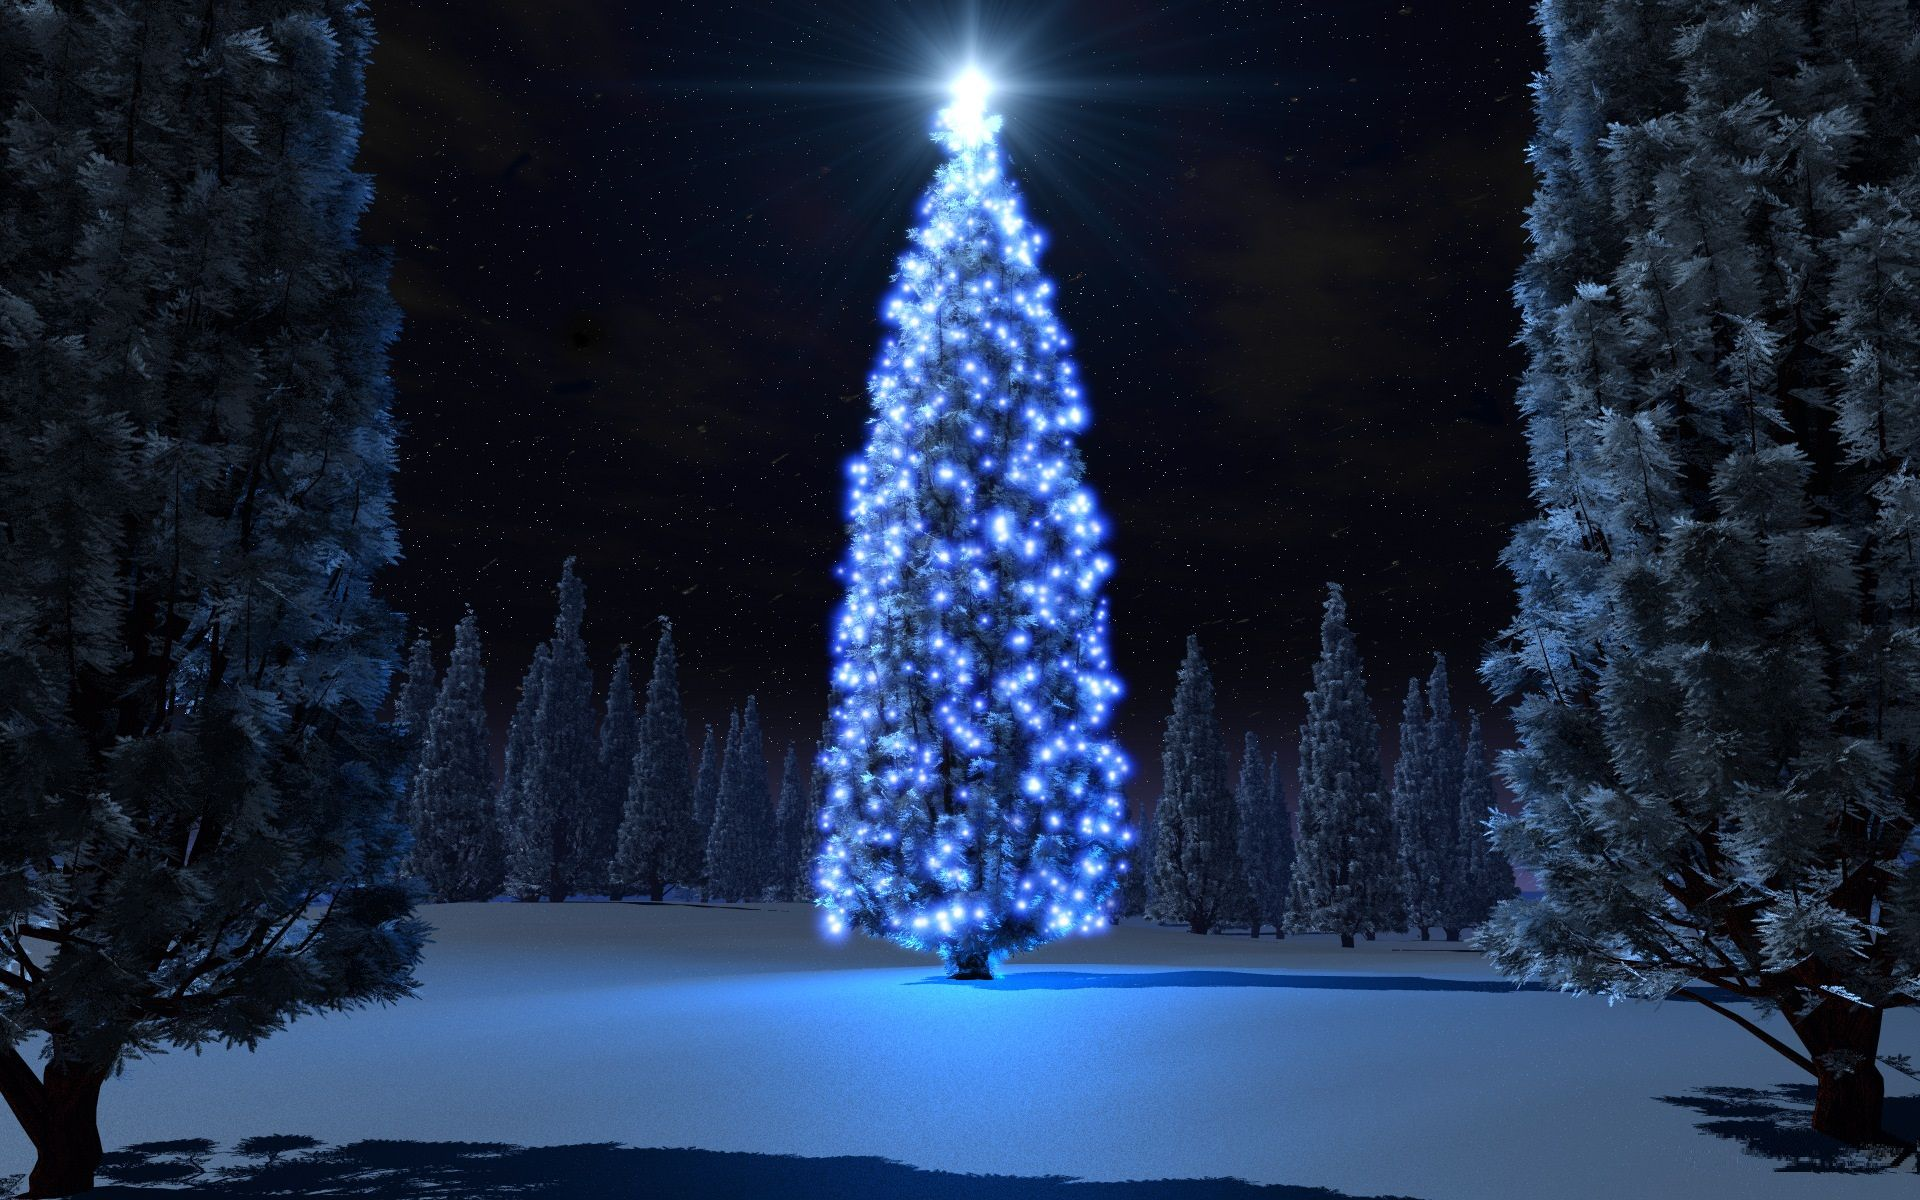 Live Christmas Wallpaper Android Free Christmas Desktop Wallpaper Christmas Tree Wallpaper Christmas Wallpaper Free